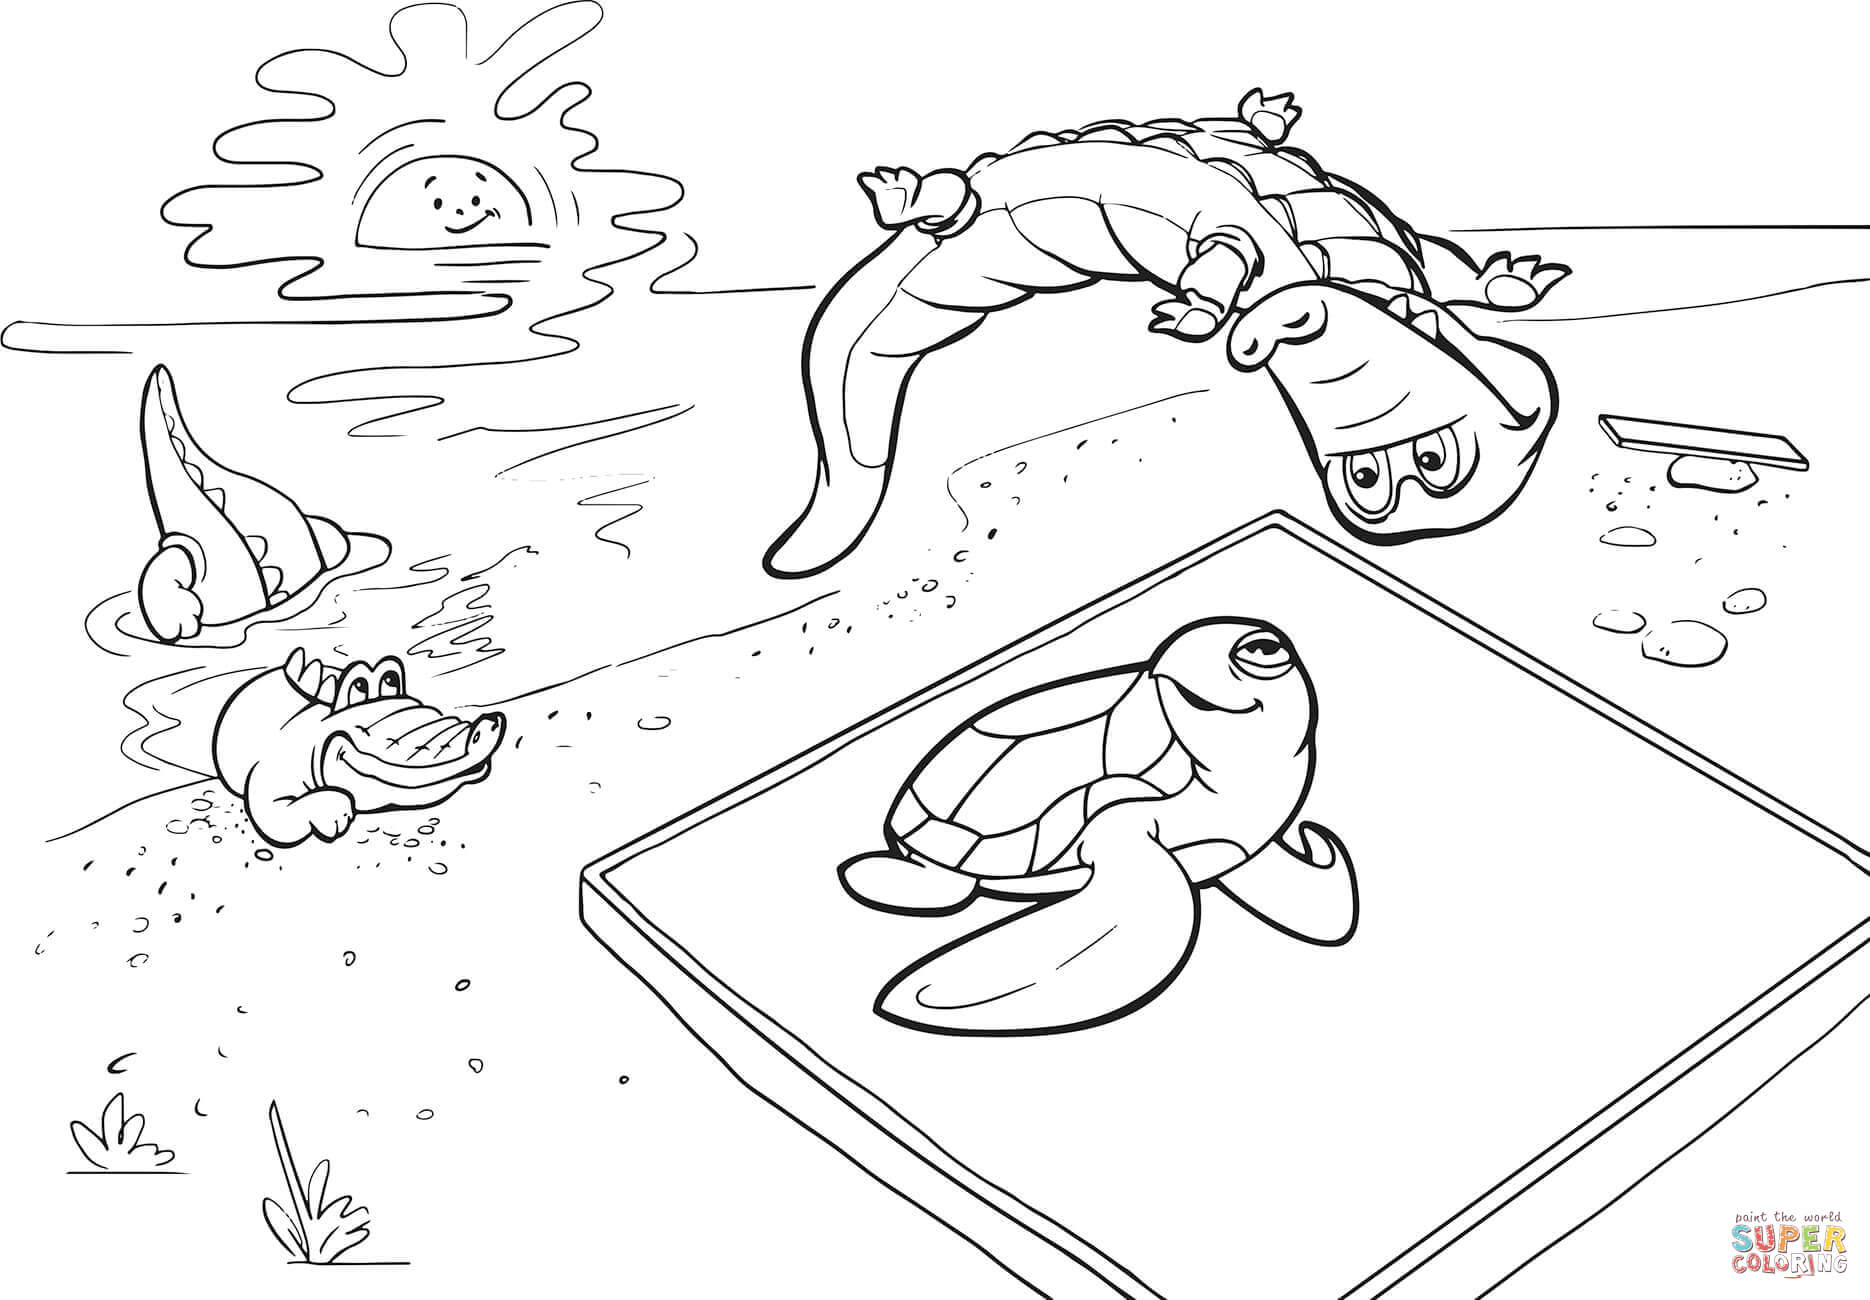 Crocodile And Turtle Are Trampolining Coloring Page